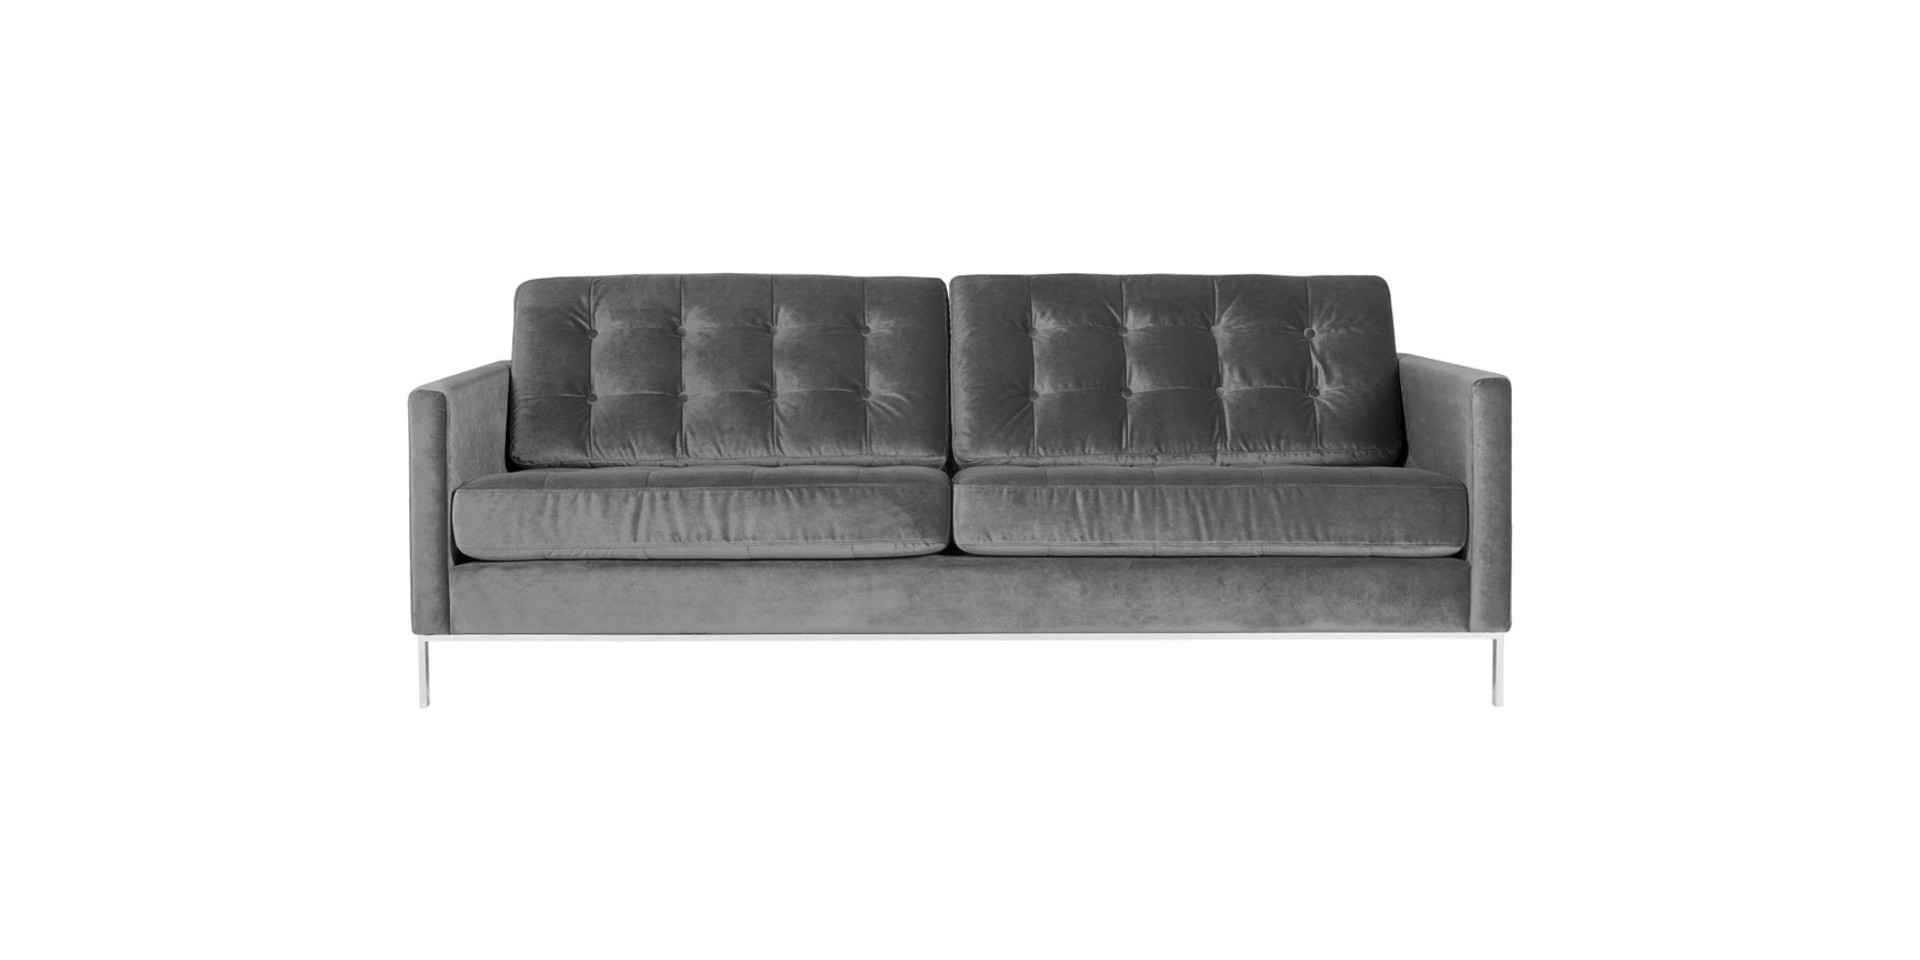 sits-kalle-canape-3seater_classic_velvet5_grey_1